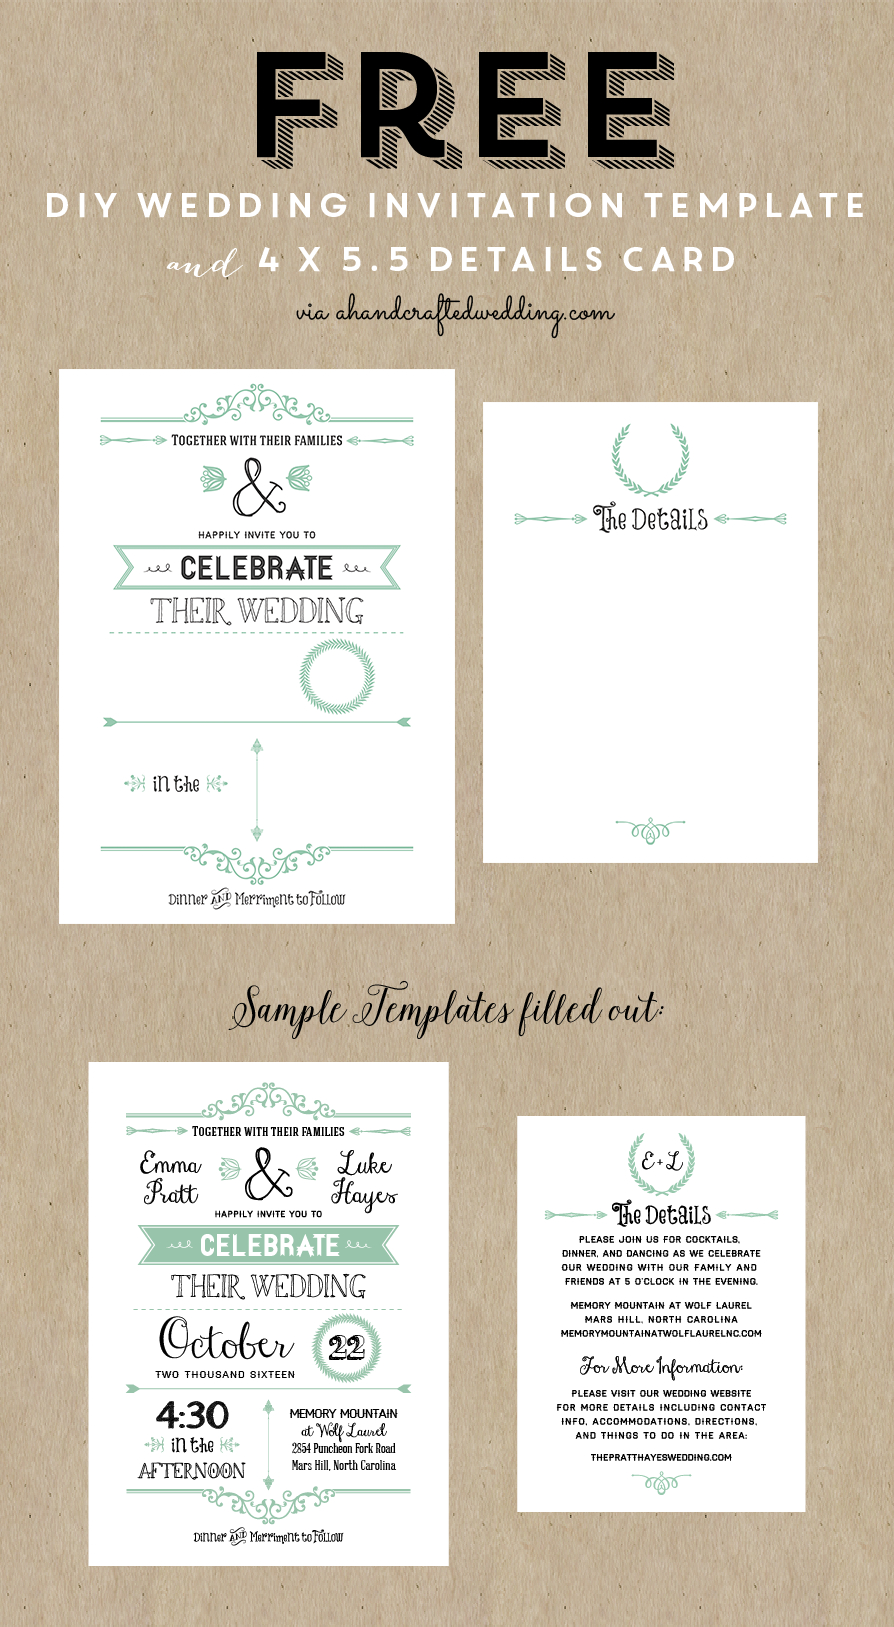 Free Printable Wedding Invitation Template | Wedding | Pinterest - Free Printable Enclosure Cards